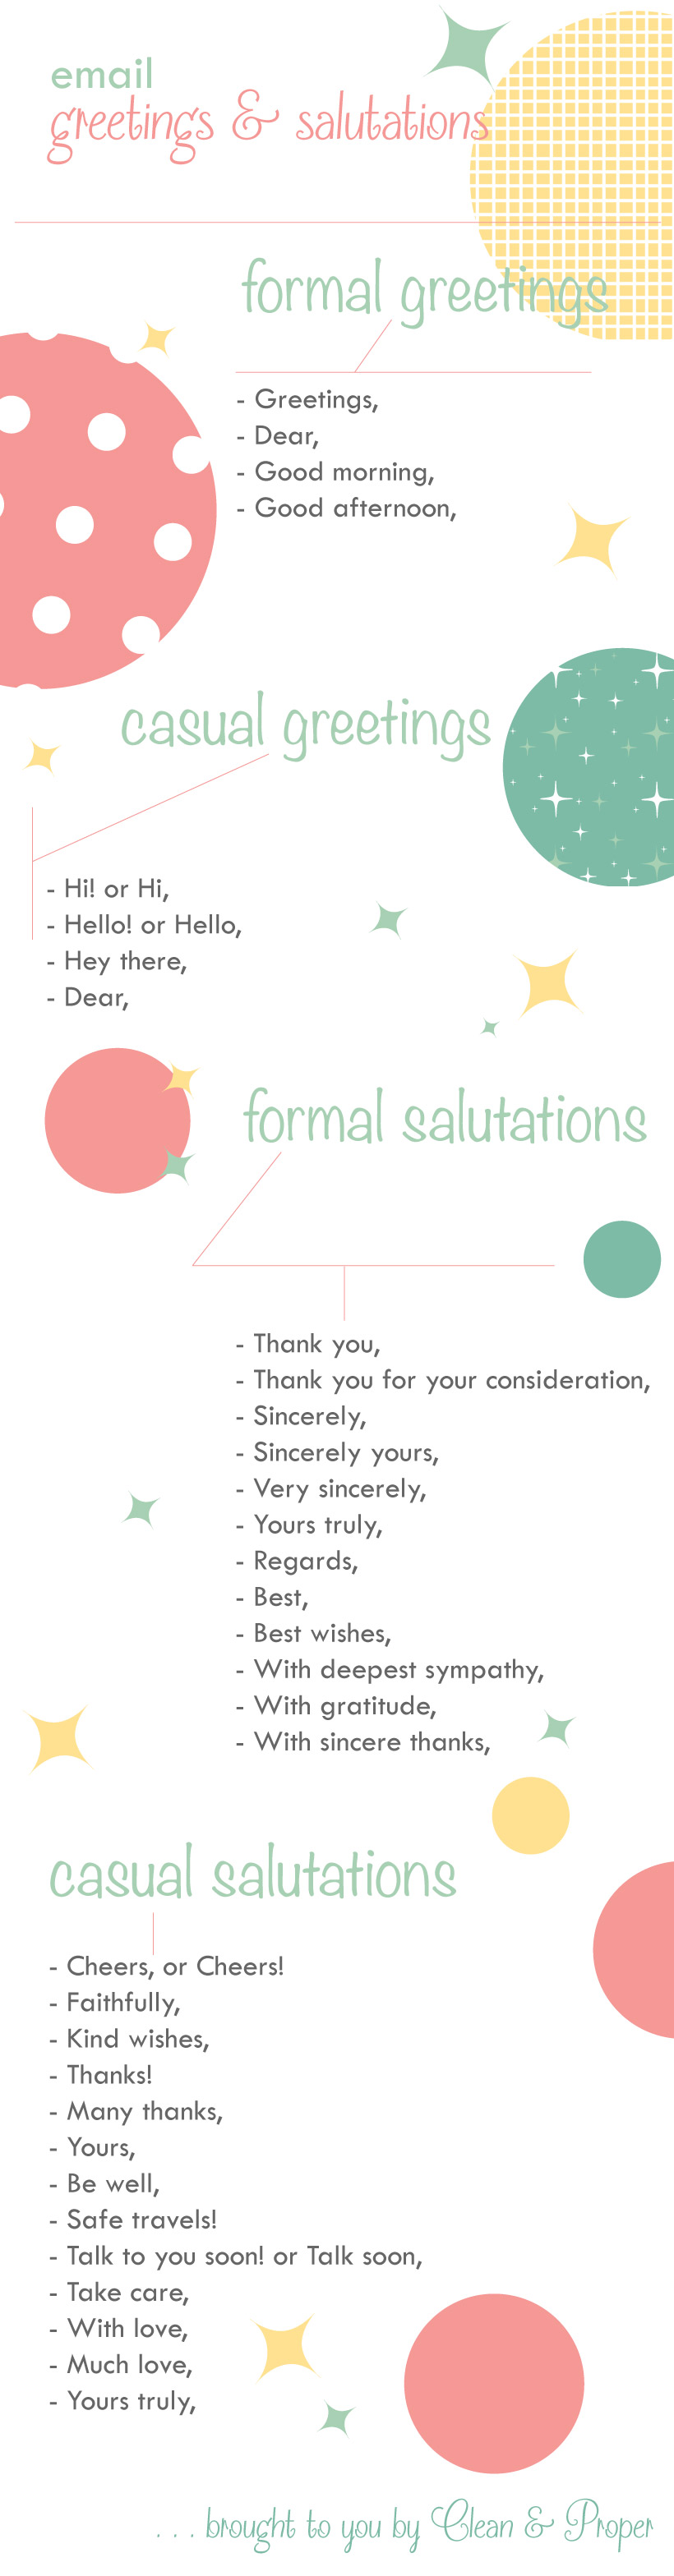 Email greetings and salutations etiquette manners correspondence email greetings and salutations etiquette manners correspondence m4hsunfo